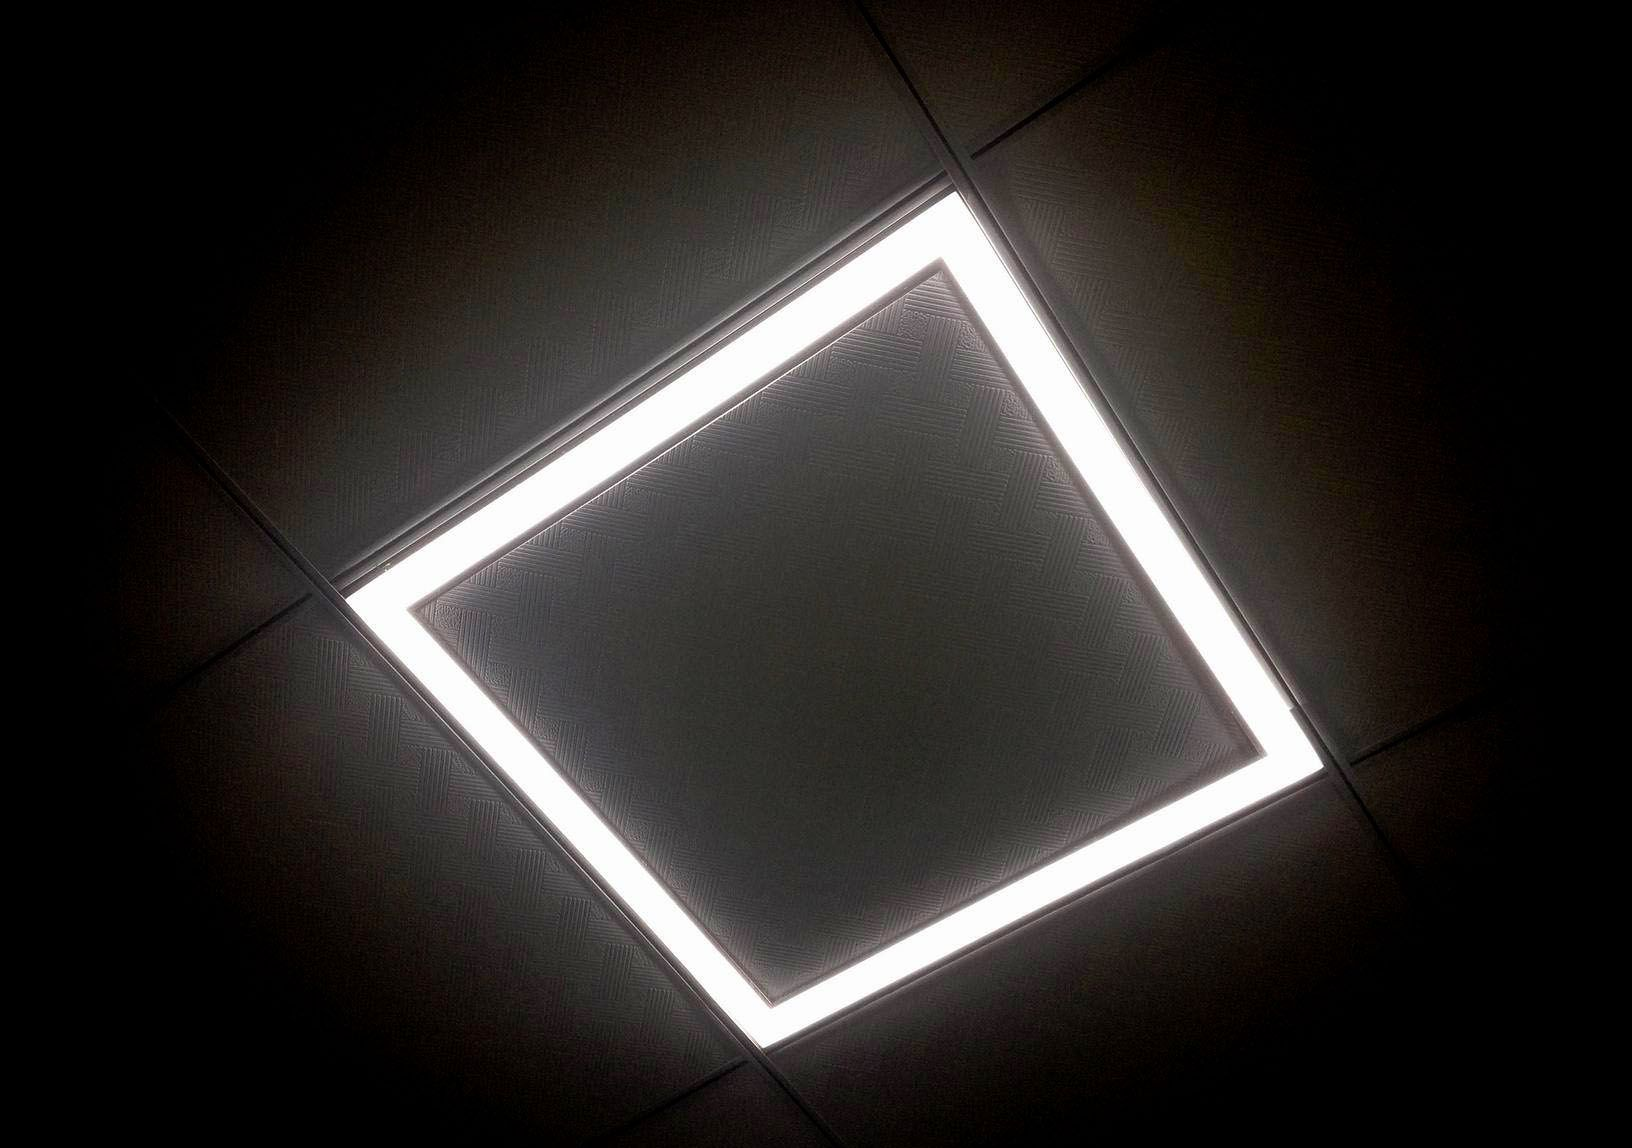 The 2 X2 Led Frame Panel Light Is The Perfect Option For A Modern High End And Contemporary Lighting Des Contemporary Lighting Design Light Creative Lighting